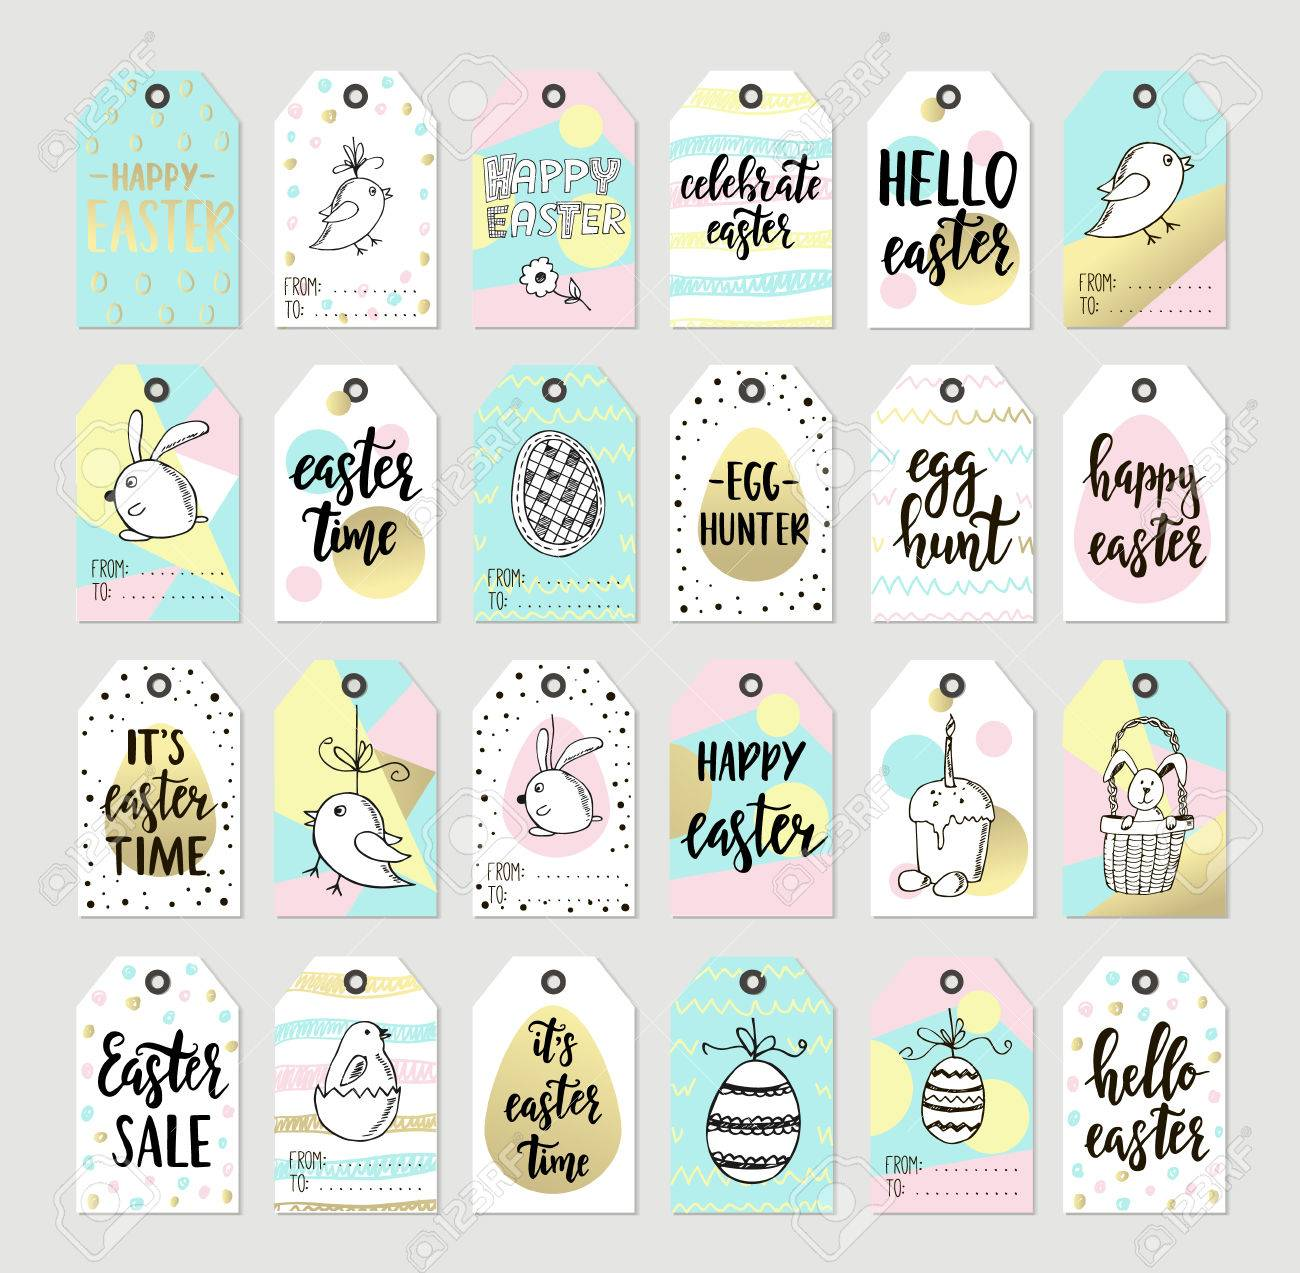 Set with happy easter gift tags and cards with calligraphy set with happy easter gift tags and cards with calligraphy handwritten lettering hand drawn negle Choice Image